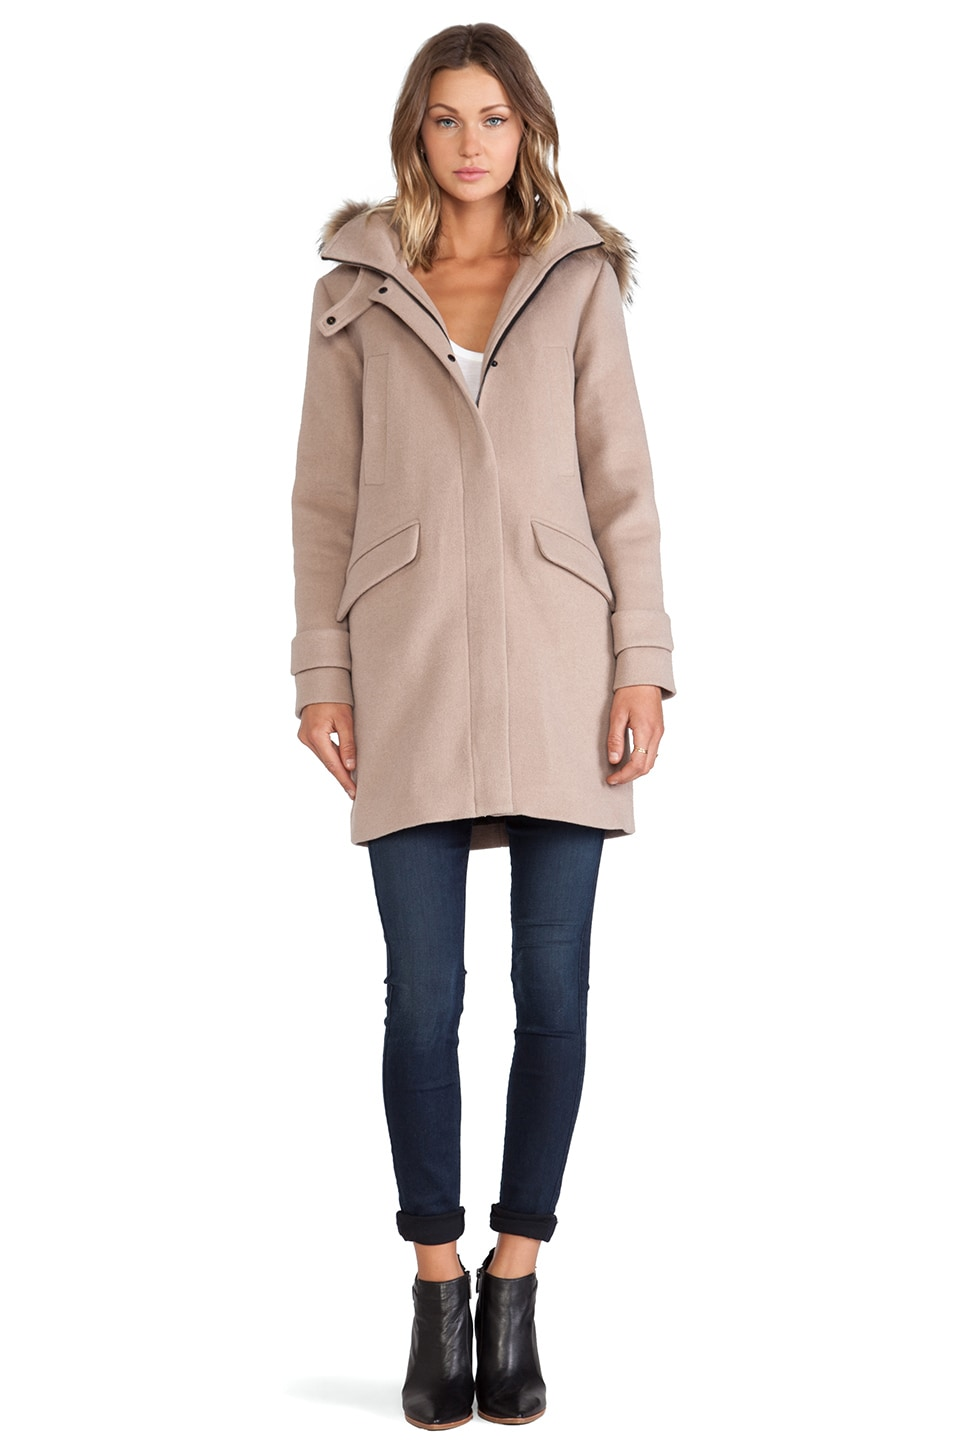 Soia & Kyo Annick Classic Wool Coat with Fur Trim in Nude